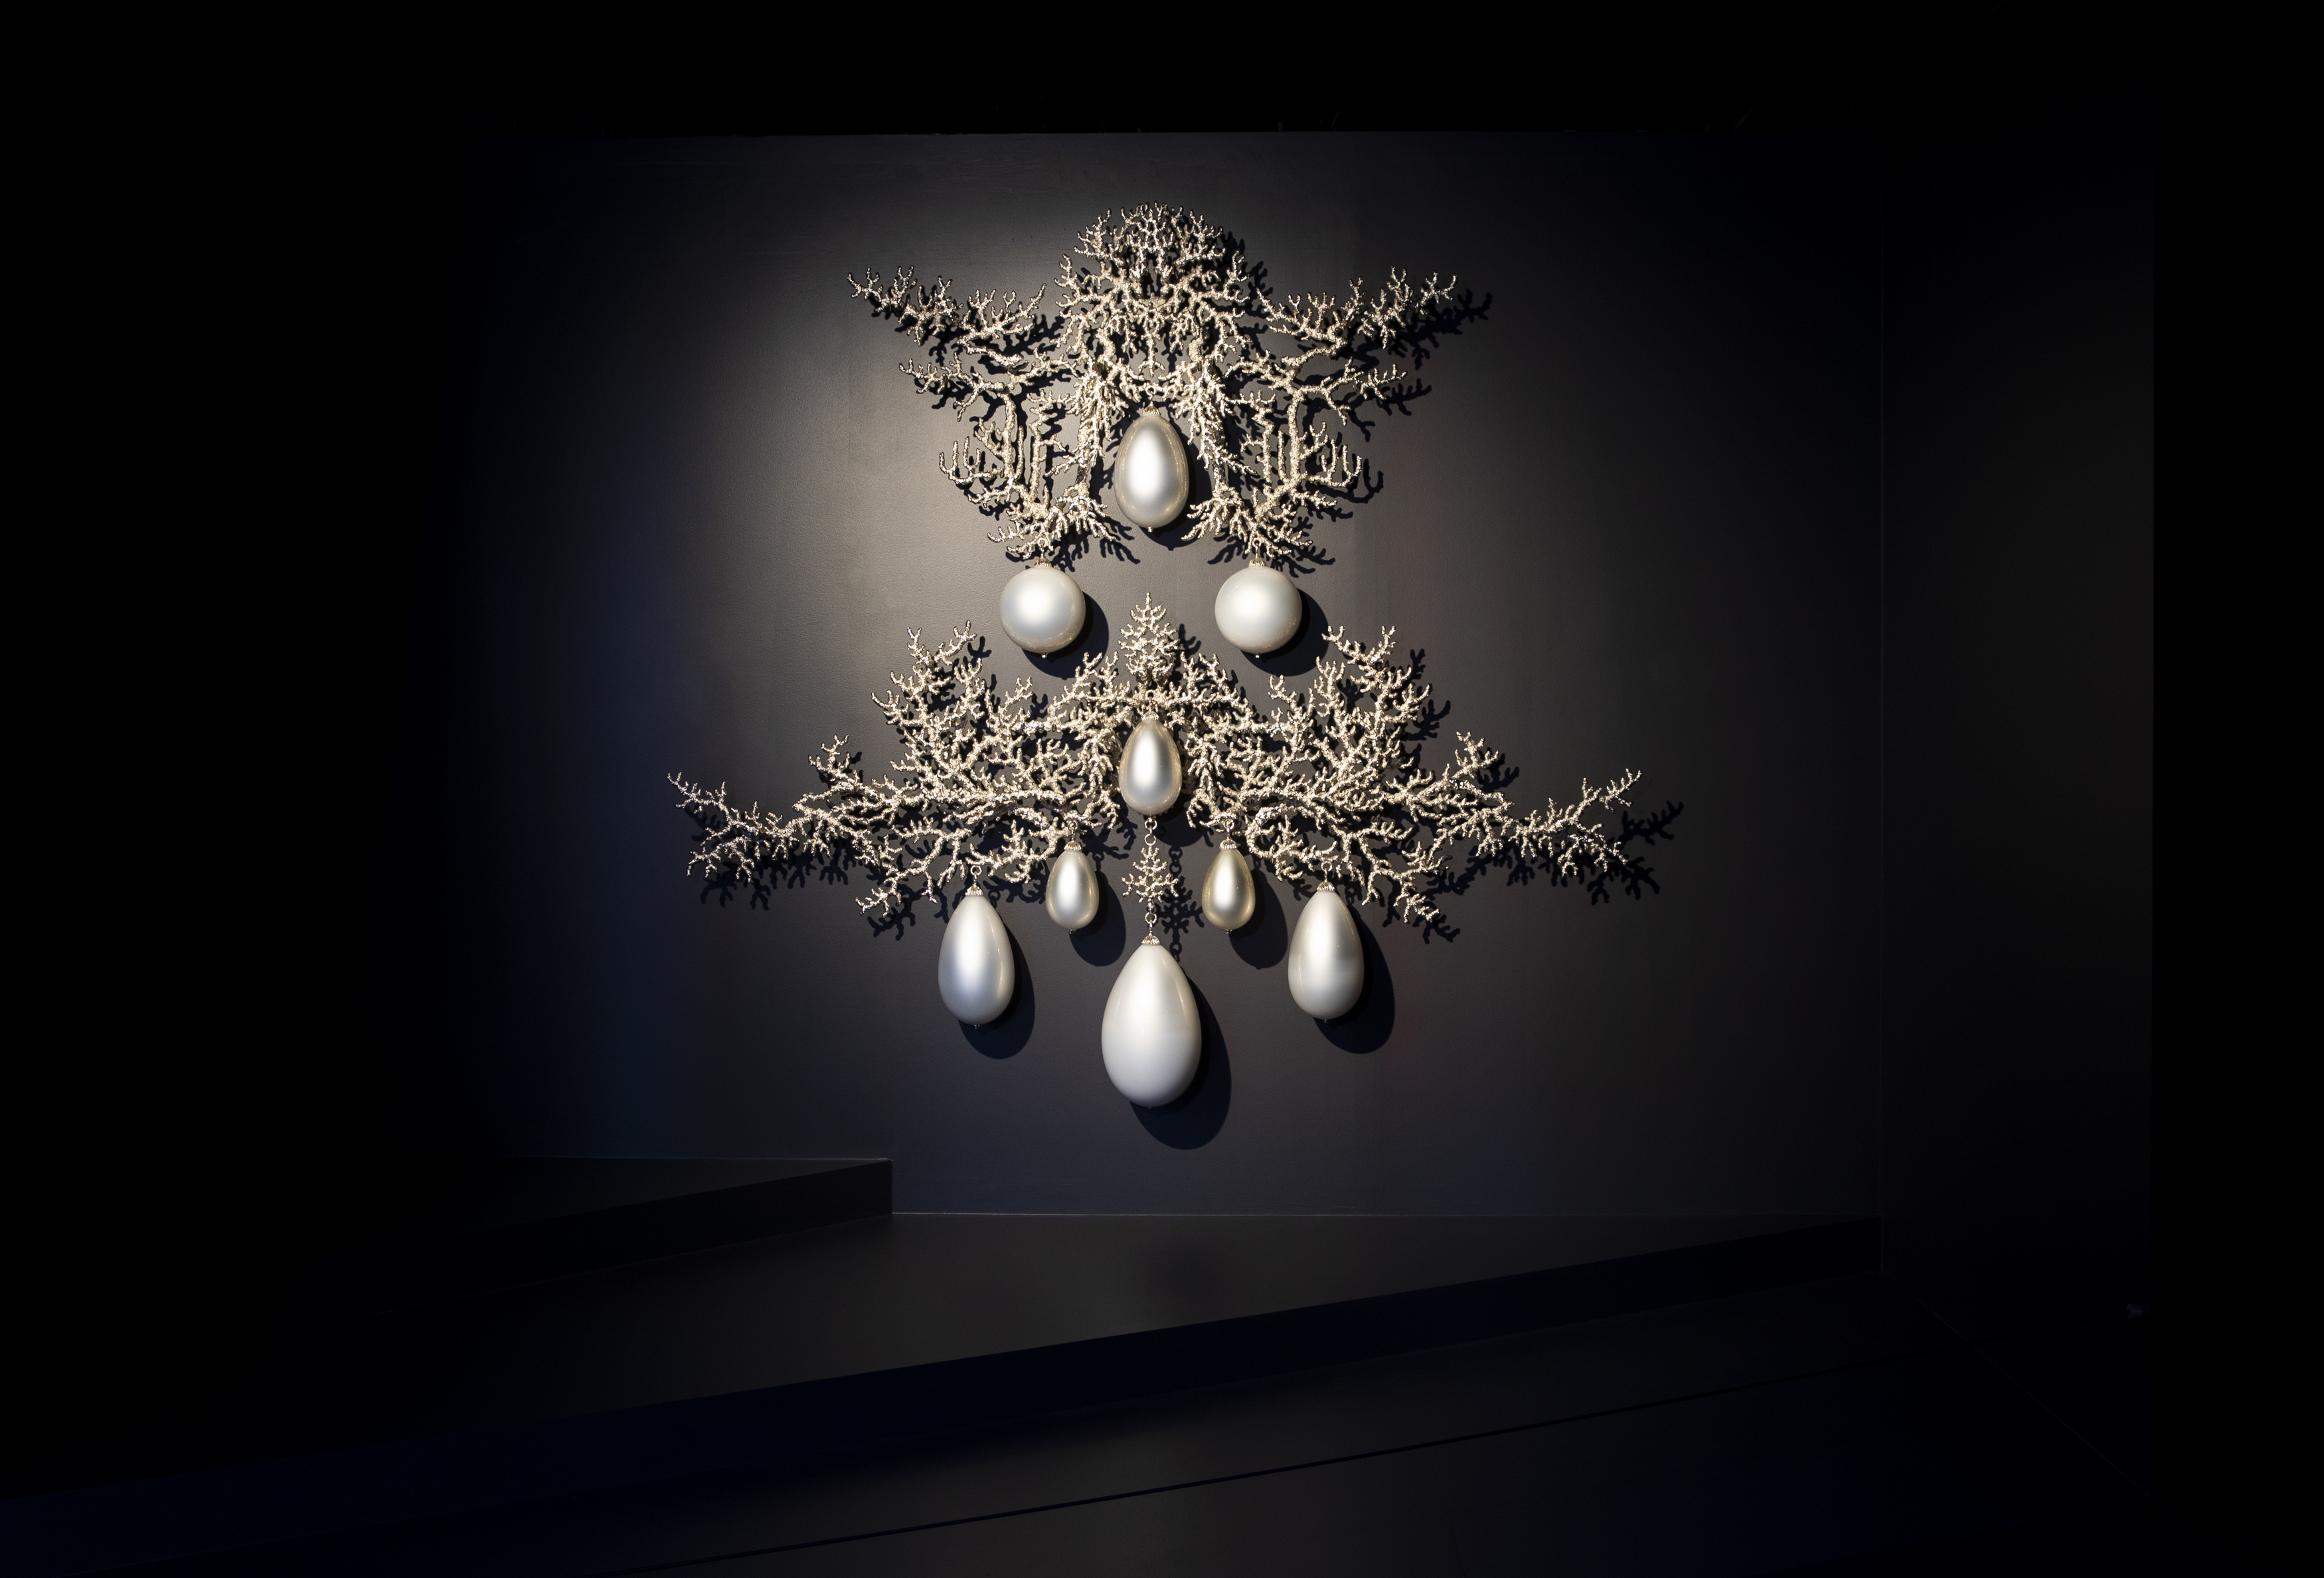 An ornate artwork in silver and white hangs on a black wall. It is in the form of a large symmetrically designed earring formed from silvery coral-like branches set with tear-shaped white glass pendants that look like pearls.